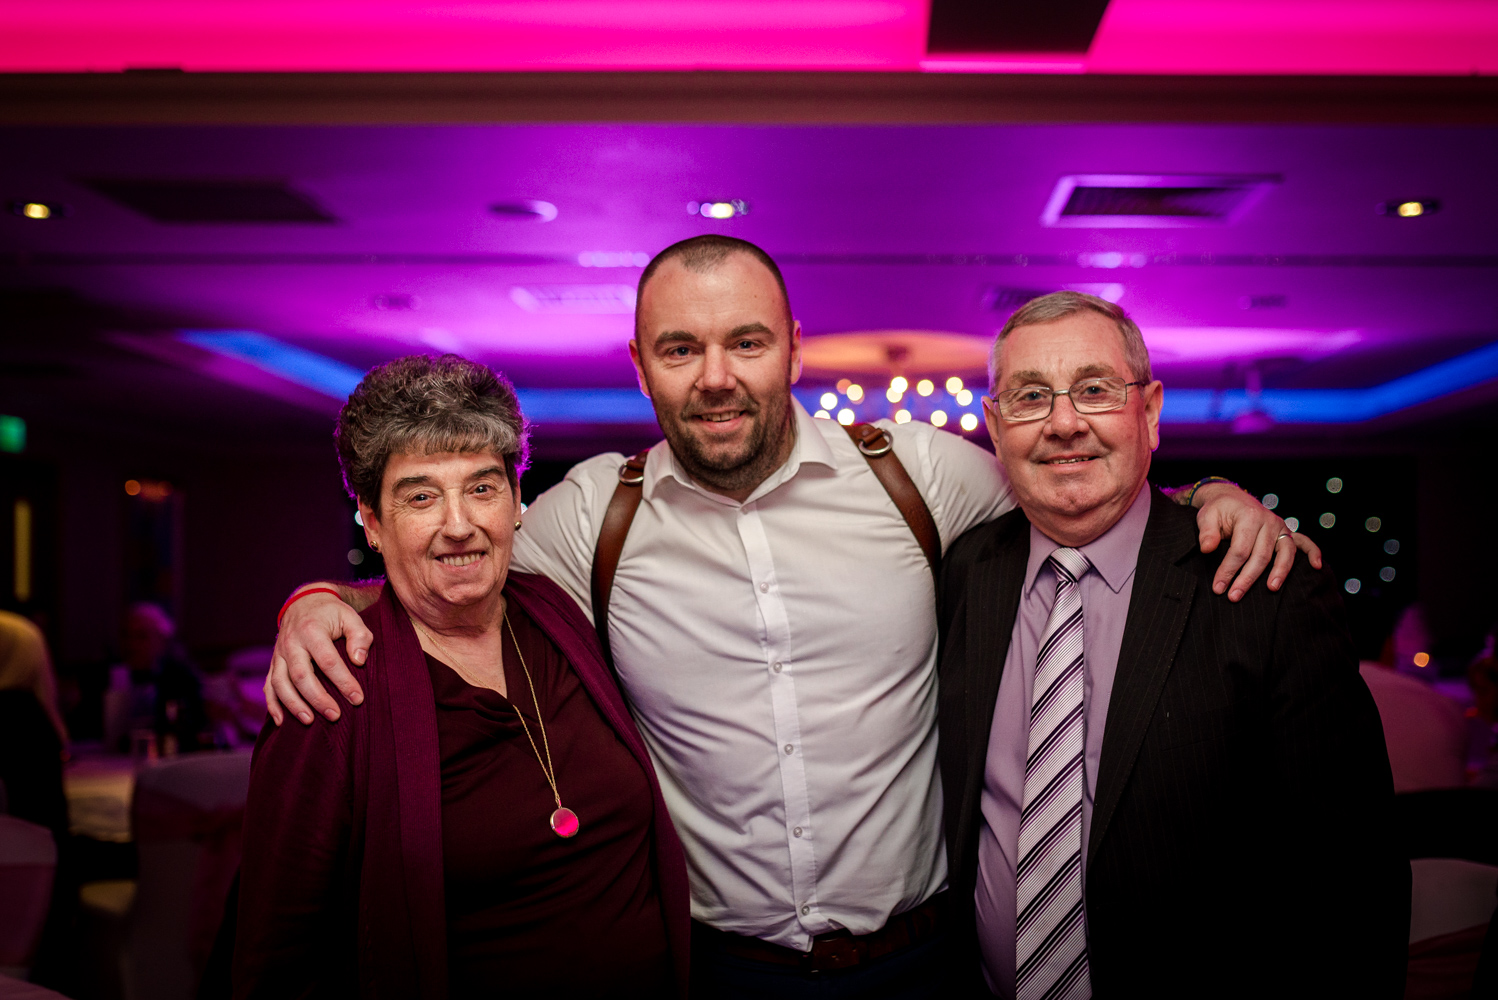 Steve with his mum and dad at the cottons hotel